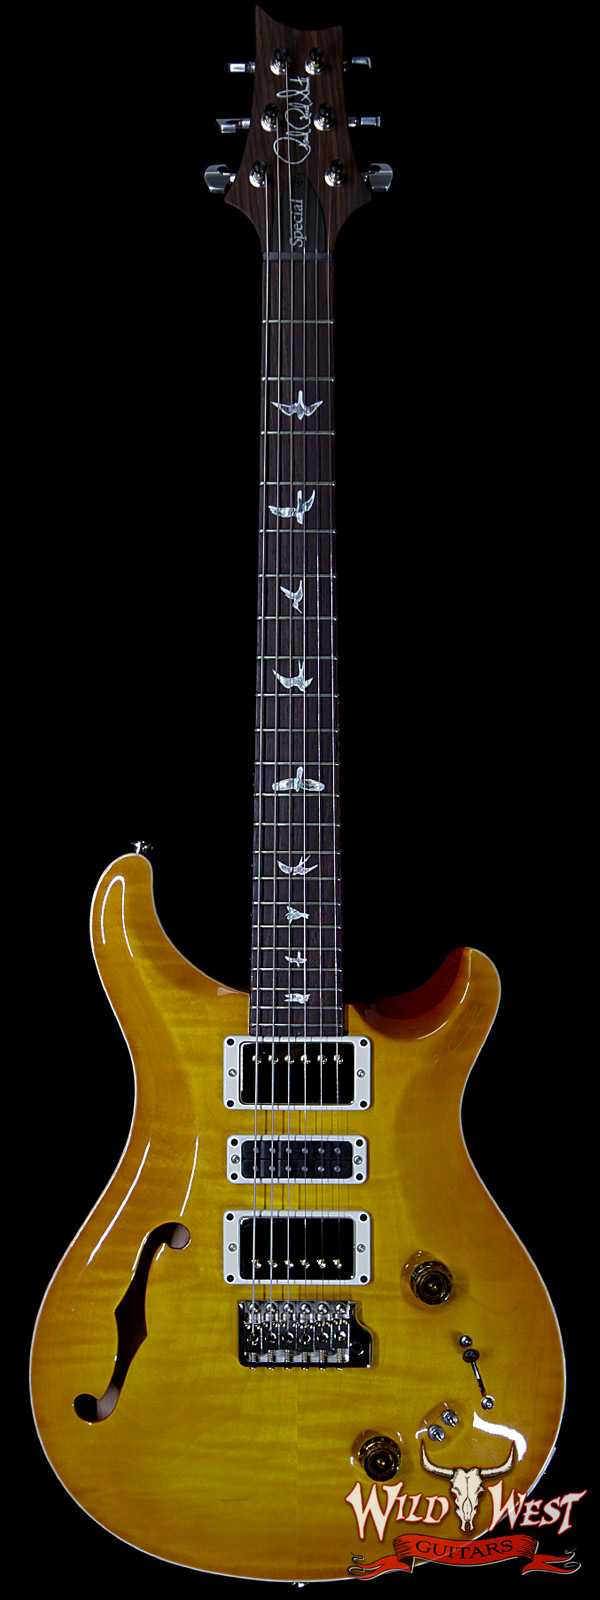 PRS Semi-Hollow Limited Edition Special 22 Rosewood Fingerboard McCarty Sunburst